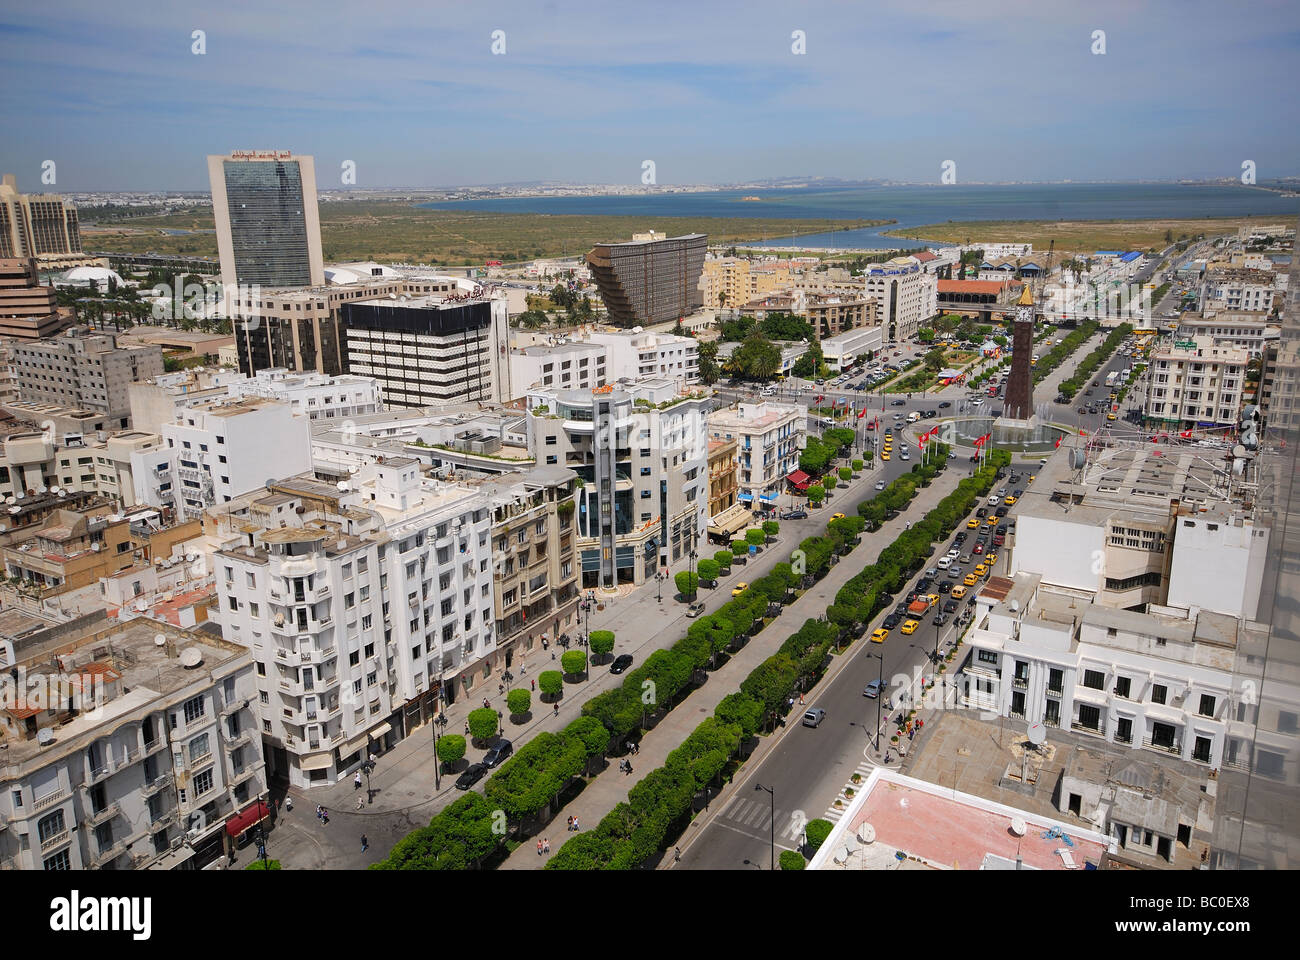 TUNIS, TUNISIA. View over Avenue Bourguiba towards Lac Tunis. 2009. - Stock Image